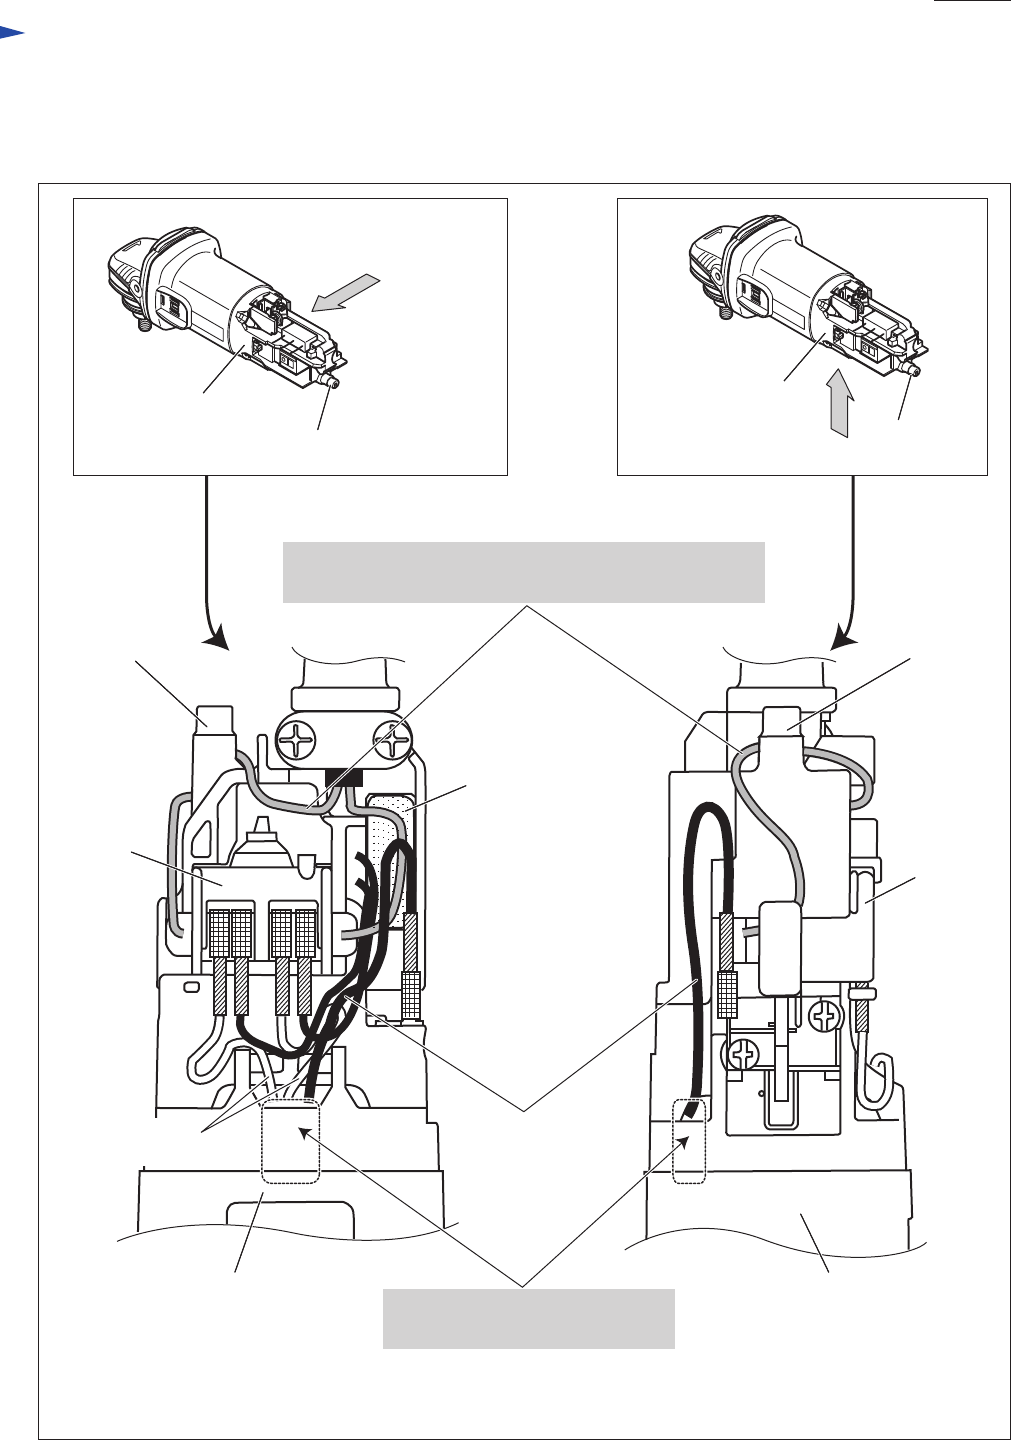 bg7 makita grinder 9556hn manual (page 7 of 8) grinder pump wiring diagram at honlapkeszites.co